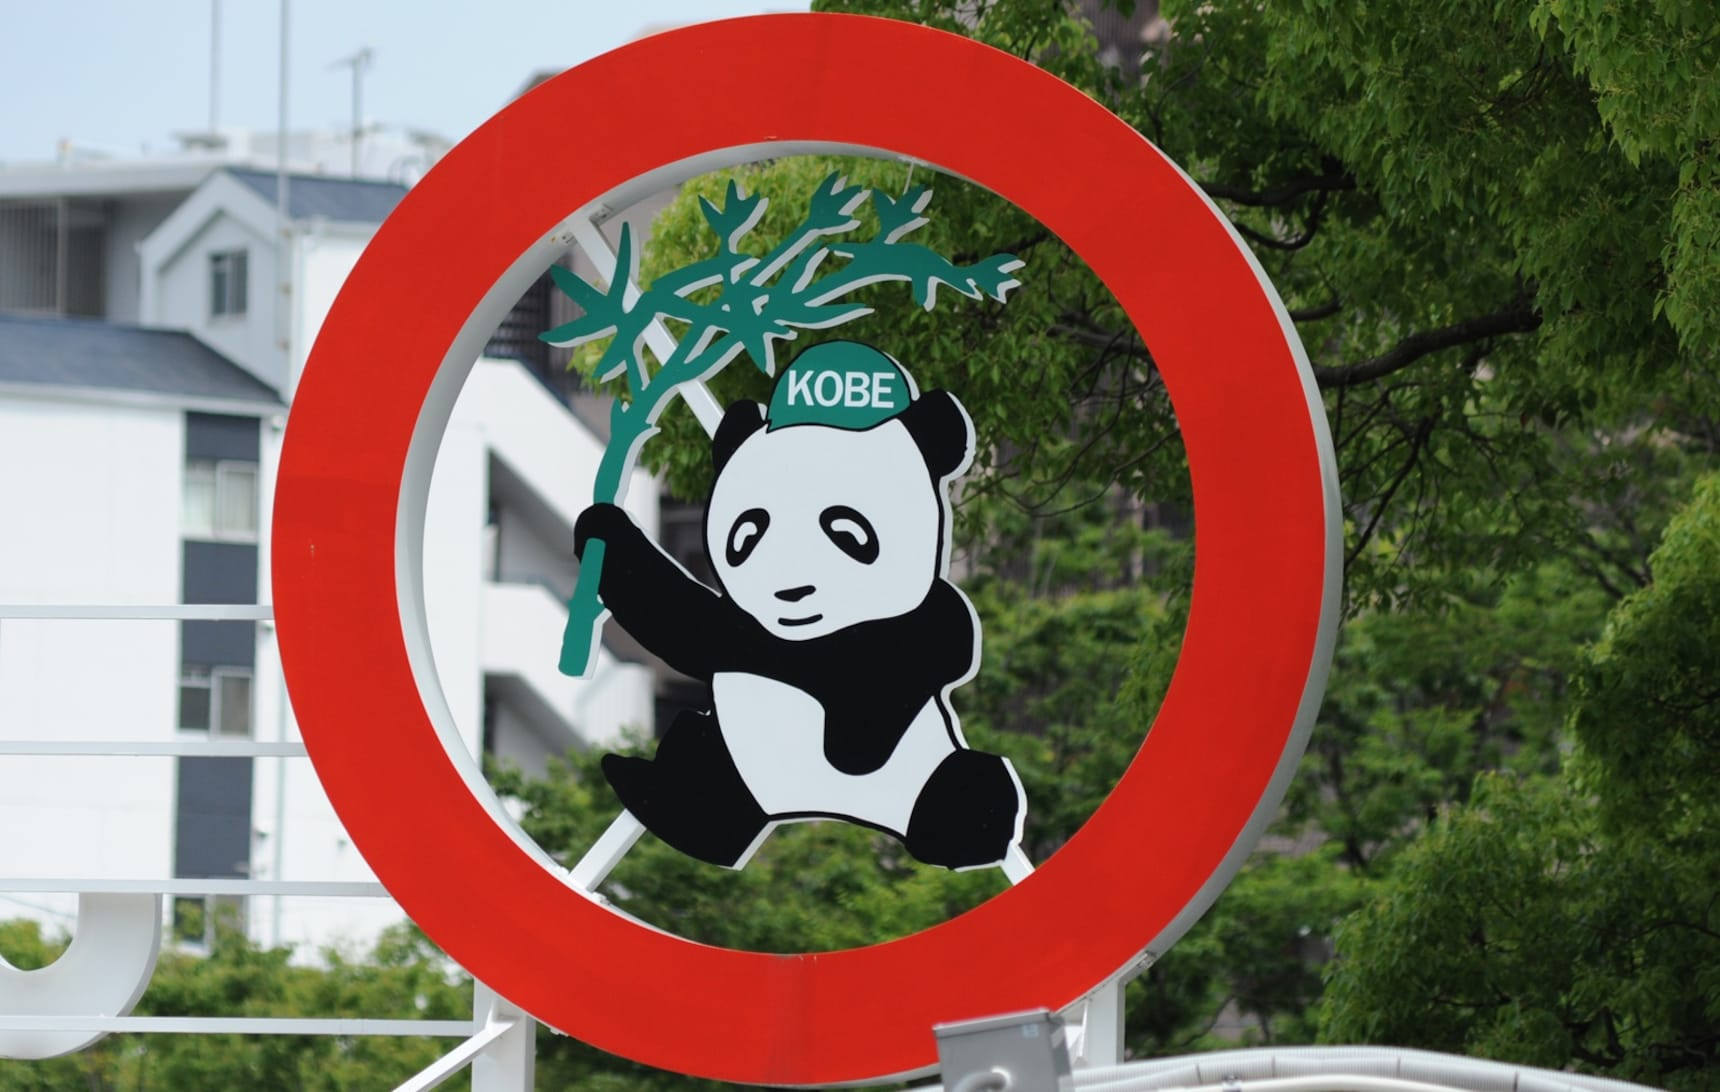 Meet a Giant Panda at Kobe Oji Zoo!